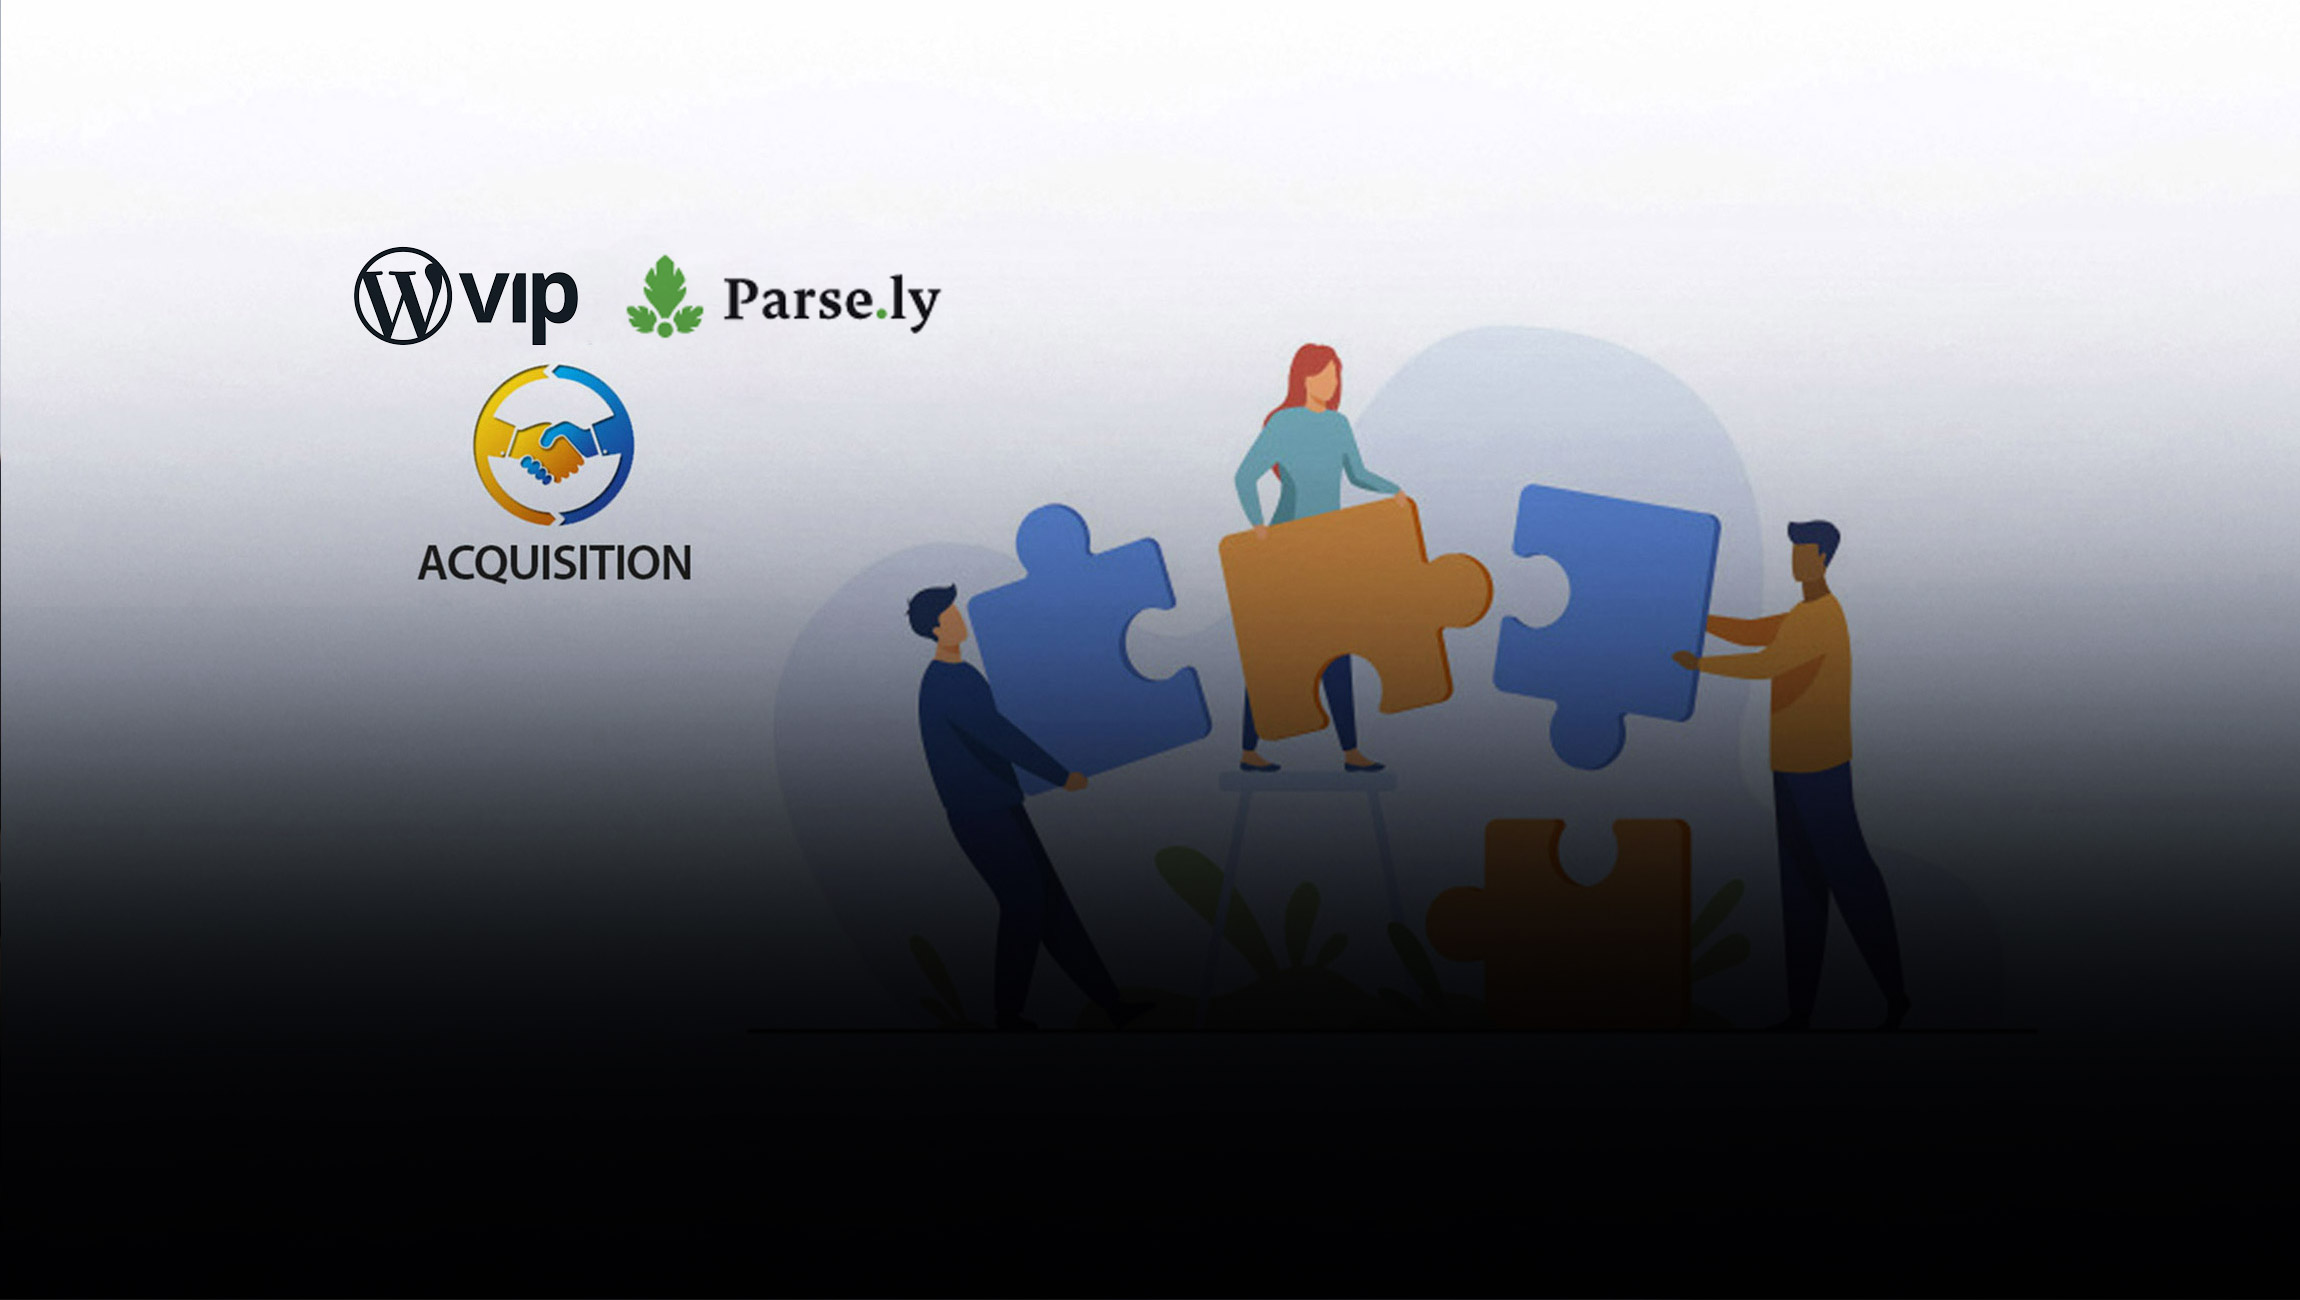 WPVIP Acquires Parse.ly To Augment Content Analytics For Enterprise Businesses